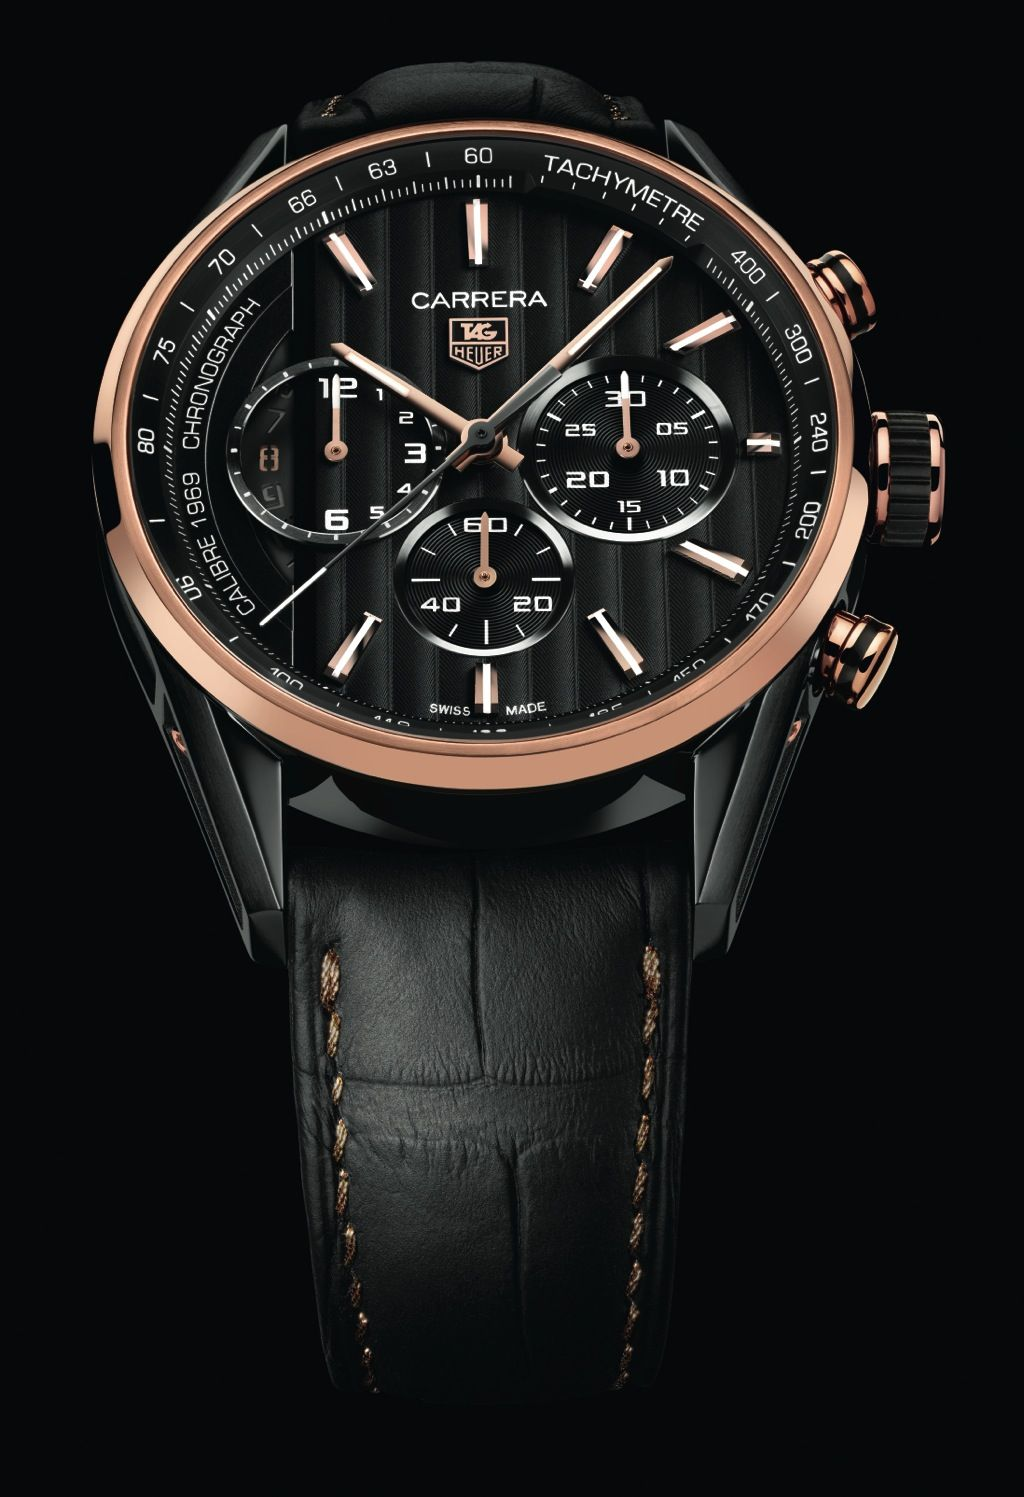 Tag Heuer Carrera Calibre 1969 Pvd Rose Gold Luxe Street